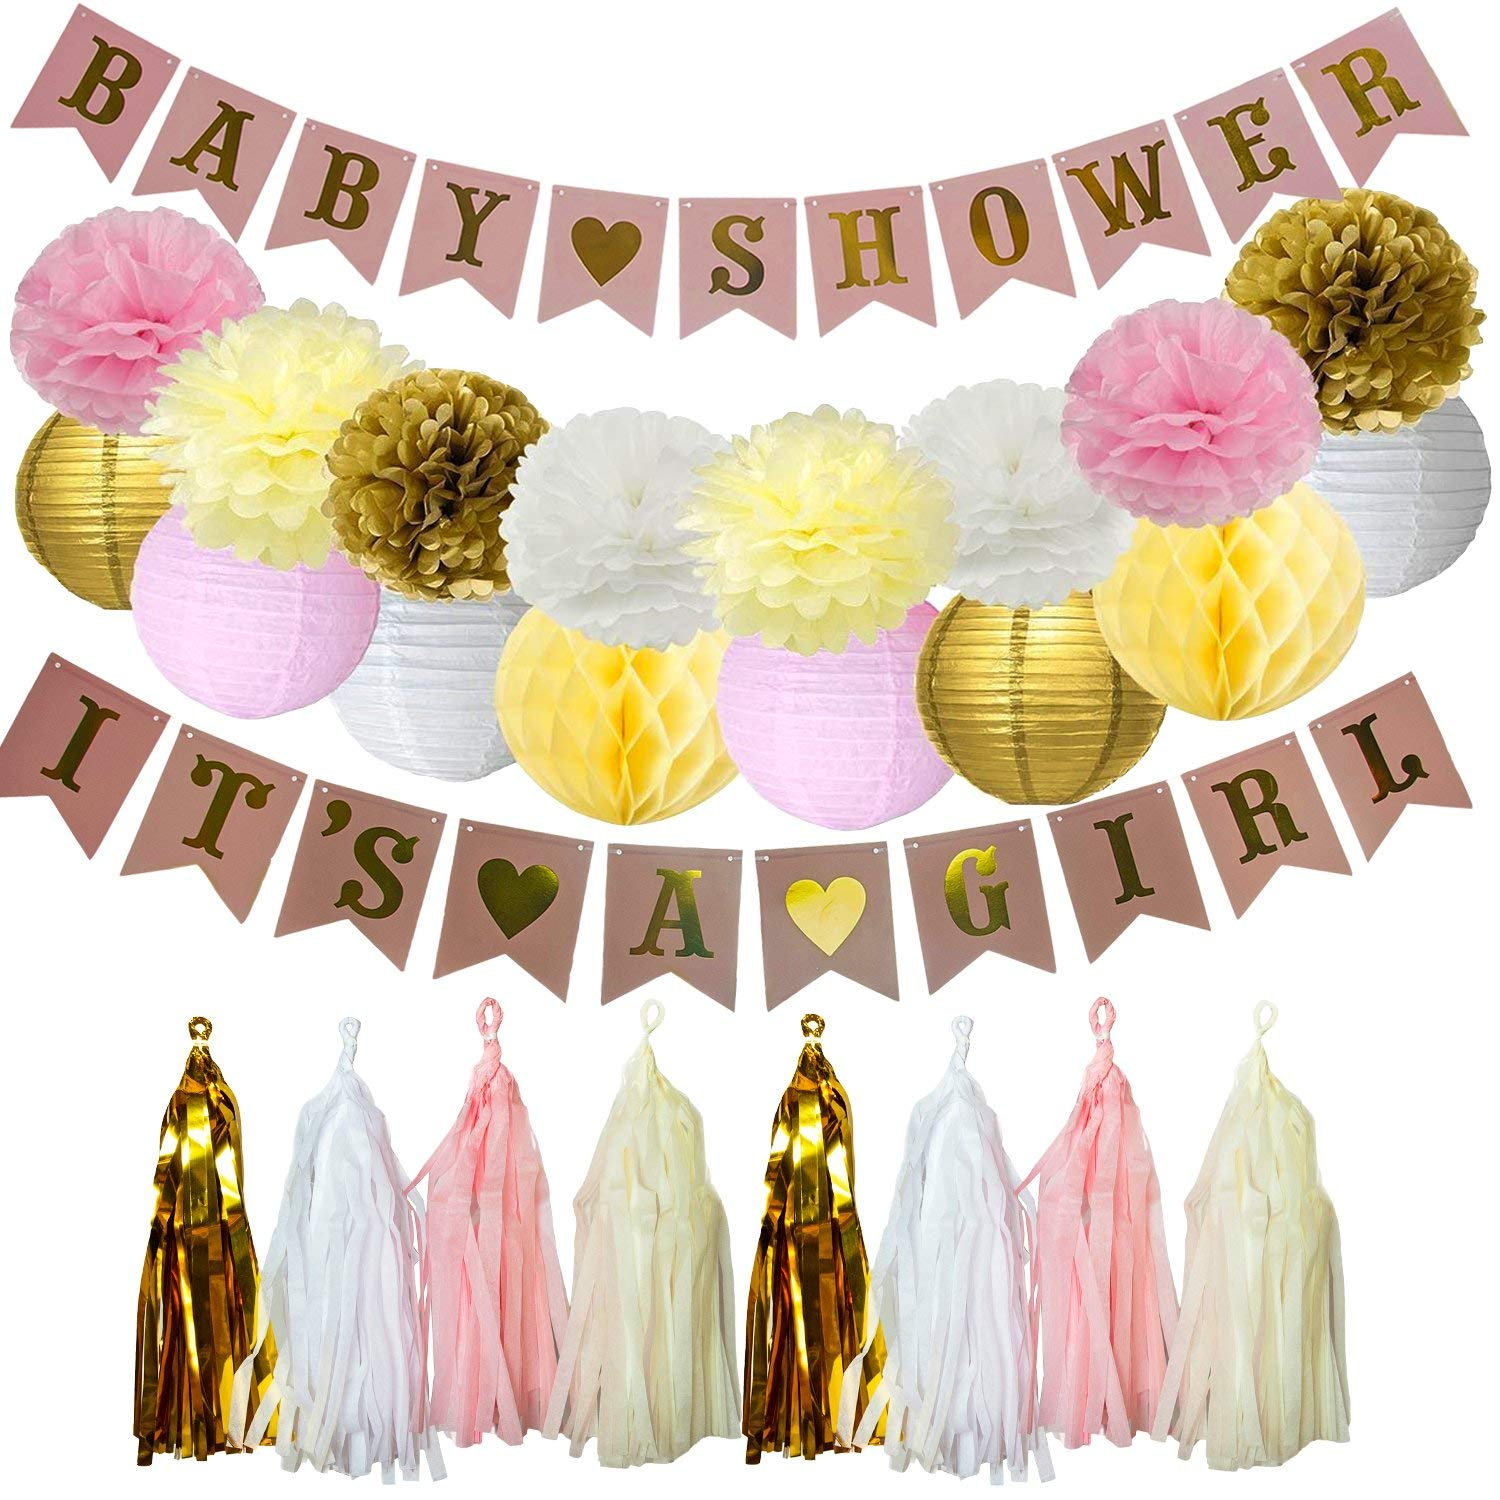 Baby Shower Decorations for Girl, DIY ITS A Girl & Baby Shower Banner, Pom Poms, Tassel Garland, and Honeycomb Balls, Gender Reveal, Pink and Gold Nursery Room Decor for Babies, Party Supplies & More